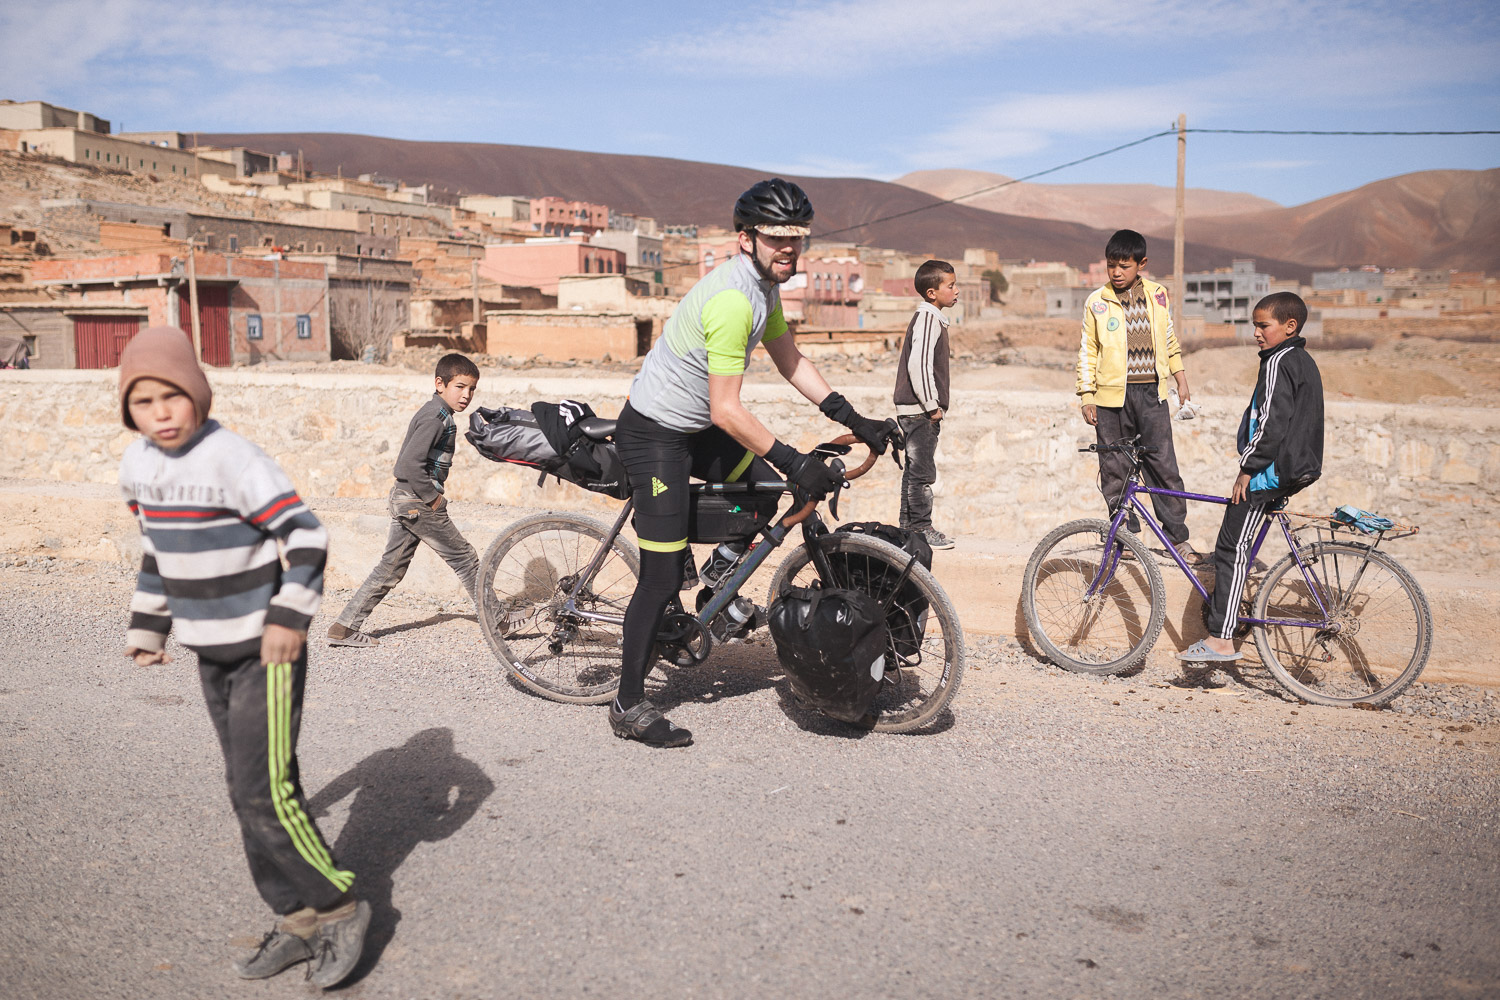 8bar bikes adventures morocco gravel 20151213 0134 bearbeitet 2 - 8bar Adventures - Marokko - Atlasgebirge - Teil 2/2